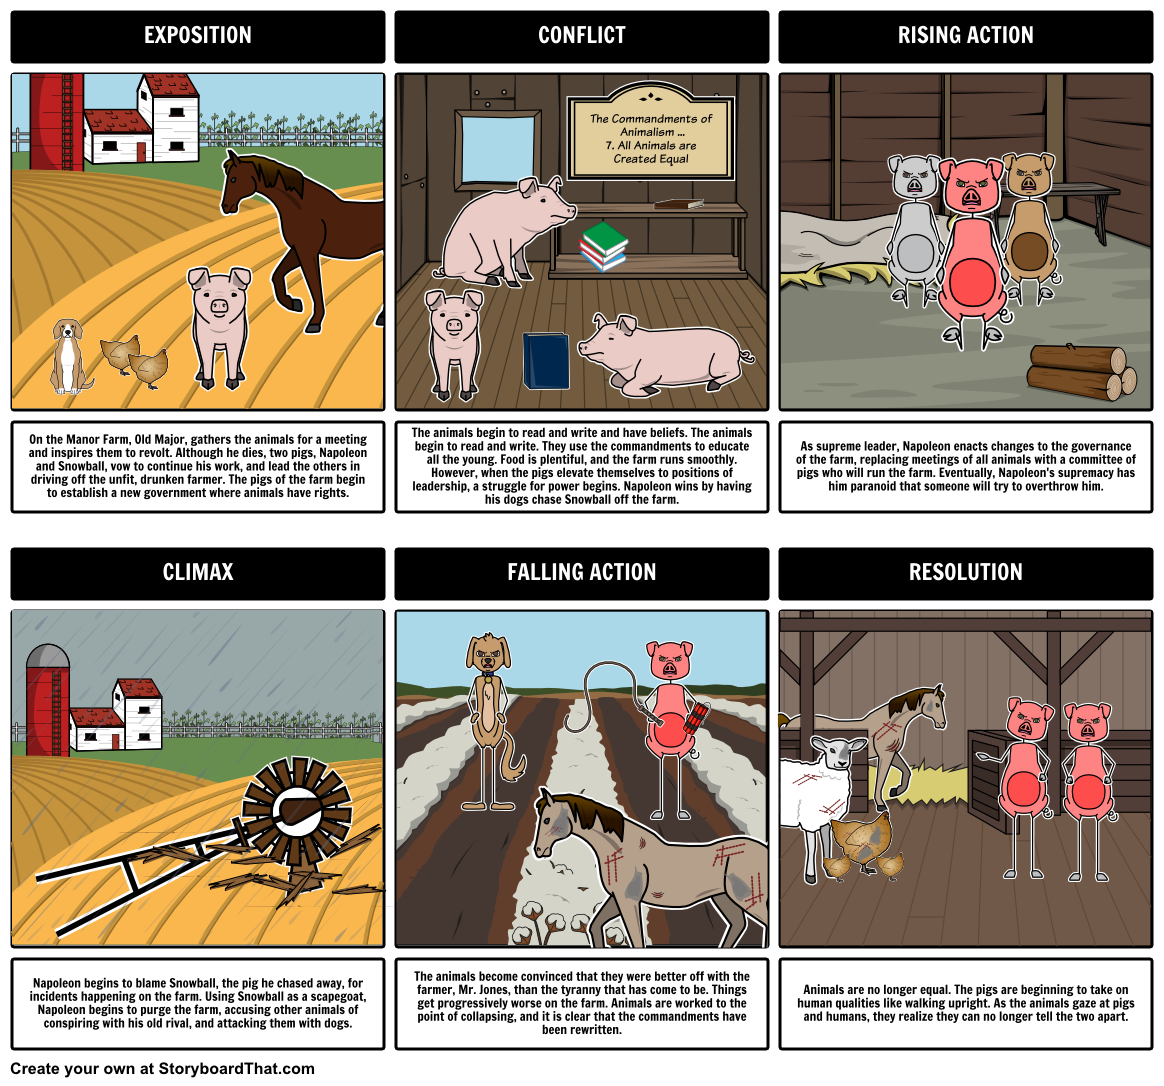 a literary analysis of the chapters in animal farm Course hero's video study guide provides in-depth summary and analysis of chapter 7 of george orwell's novel animal farm.